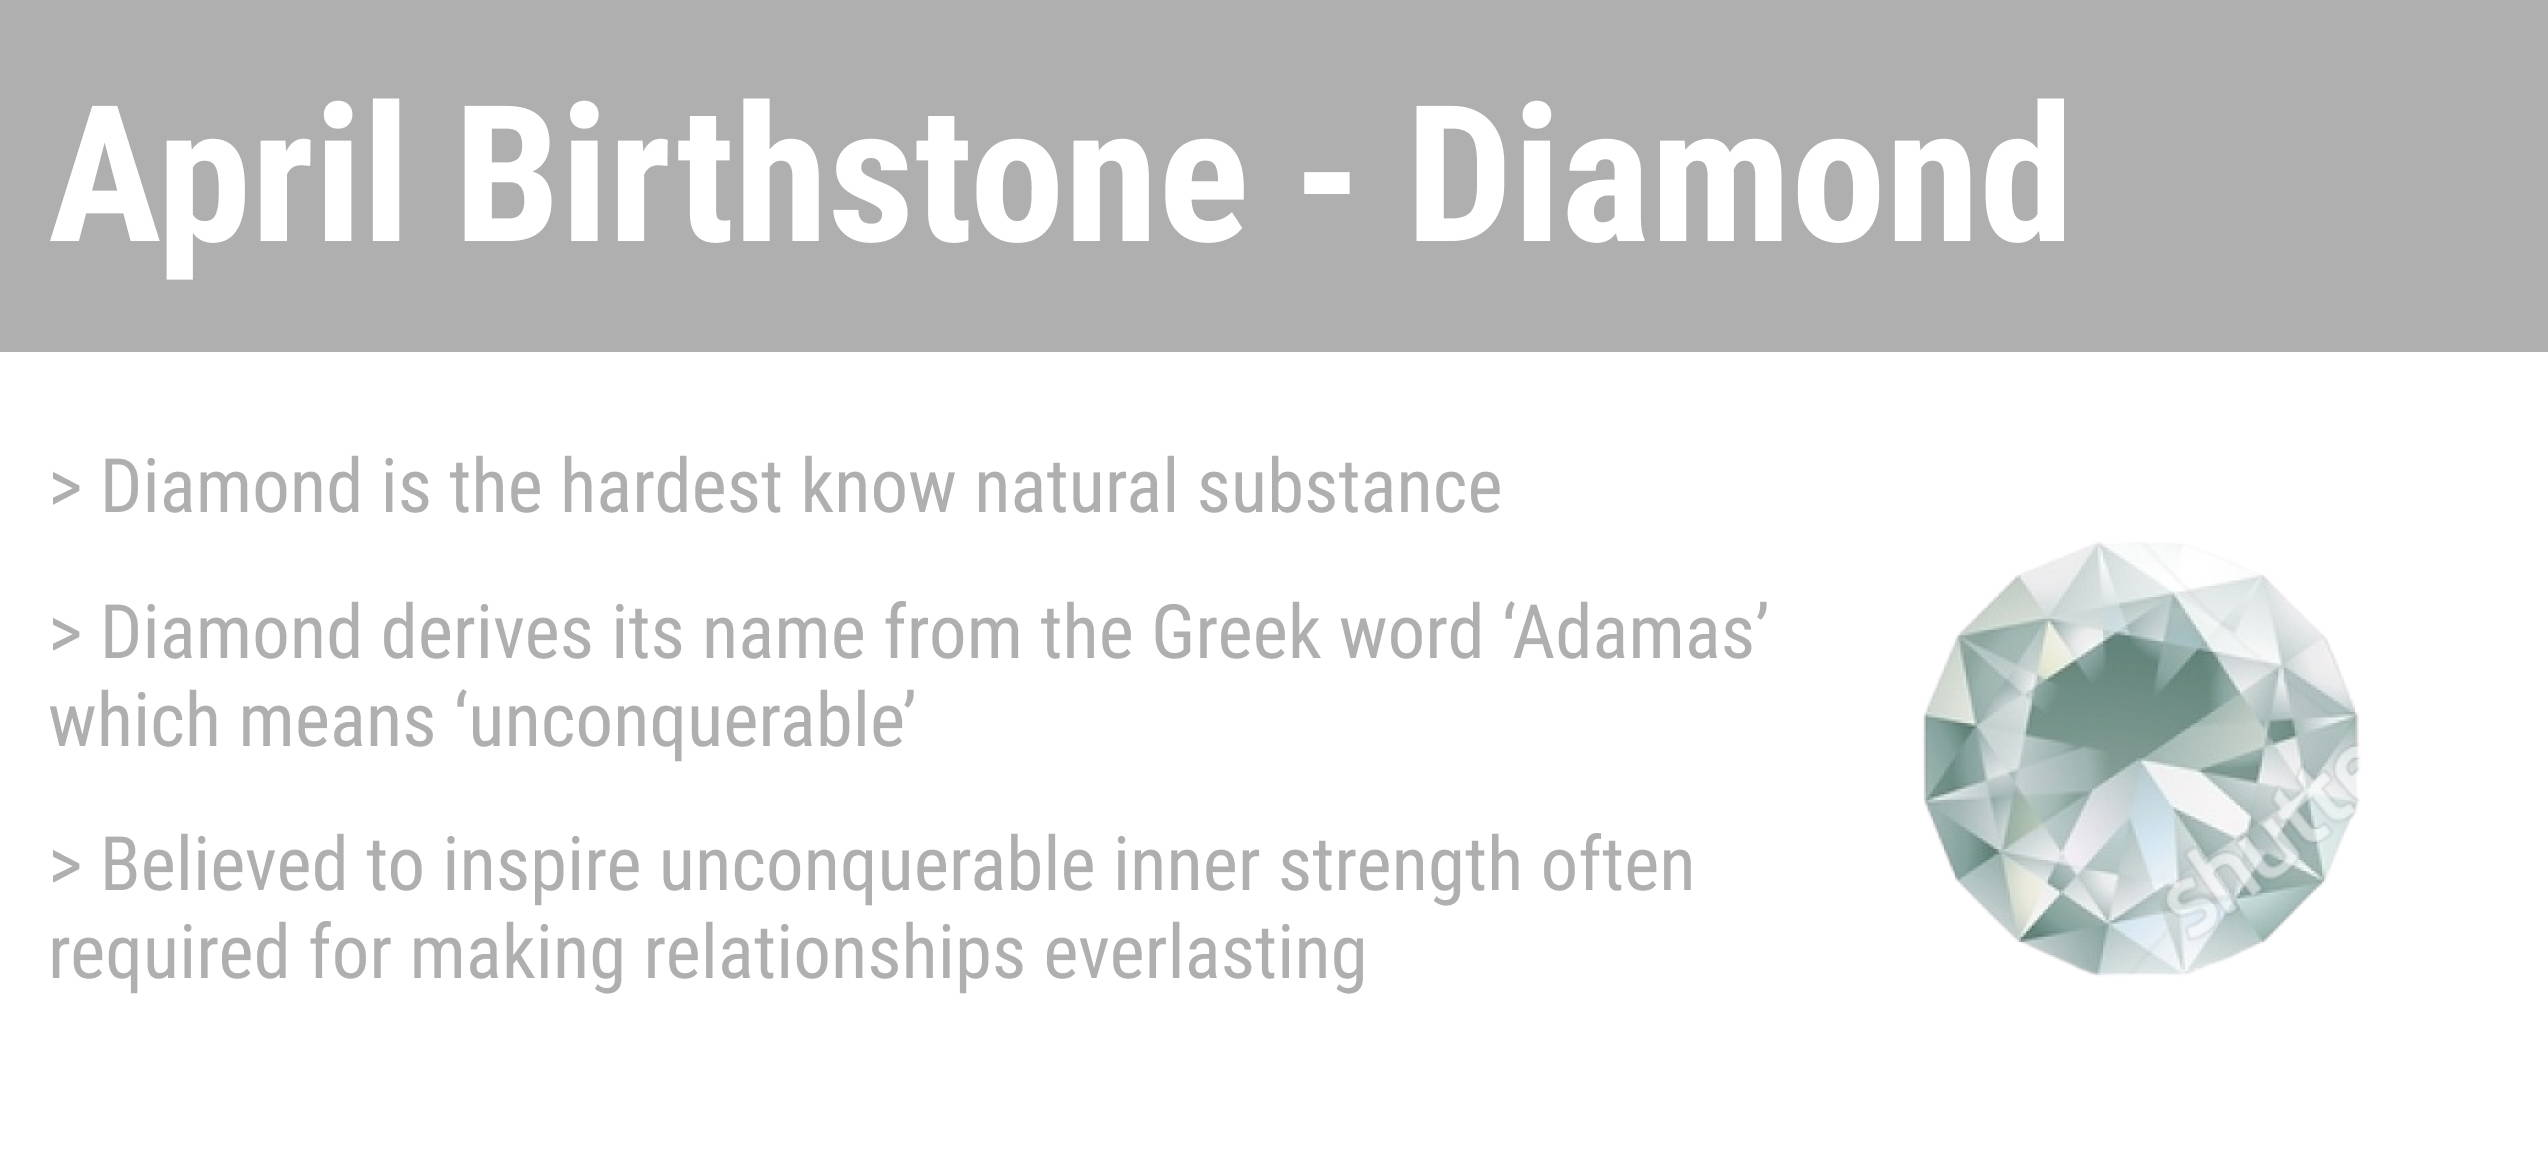 april birthstone quick facts